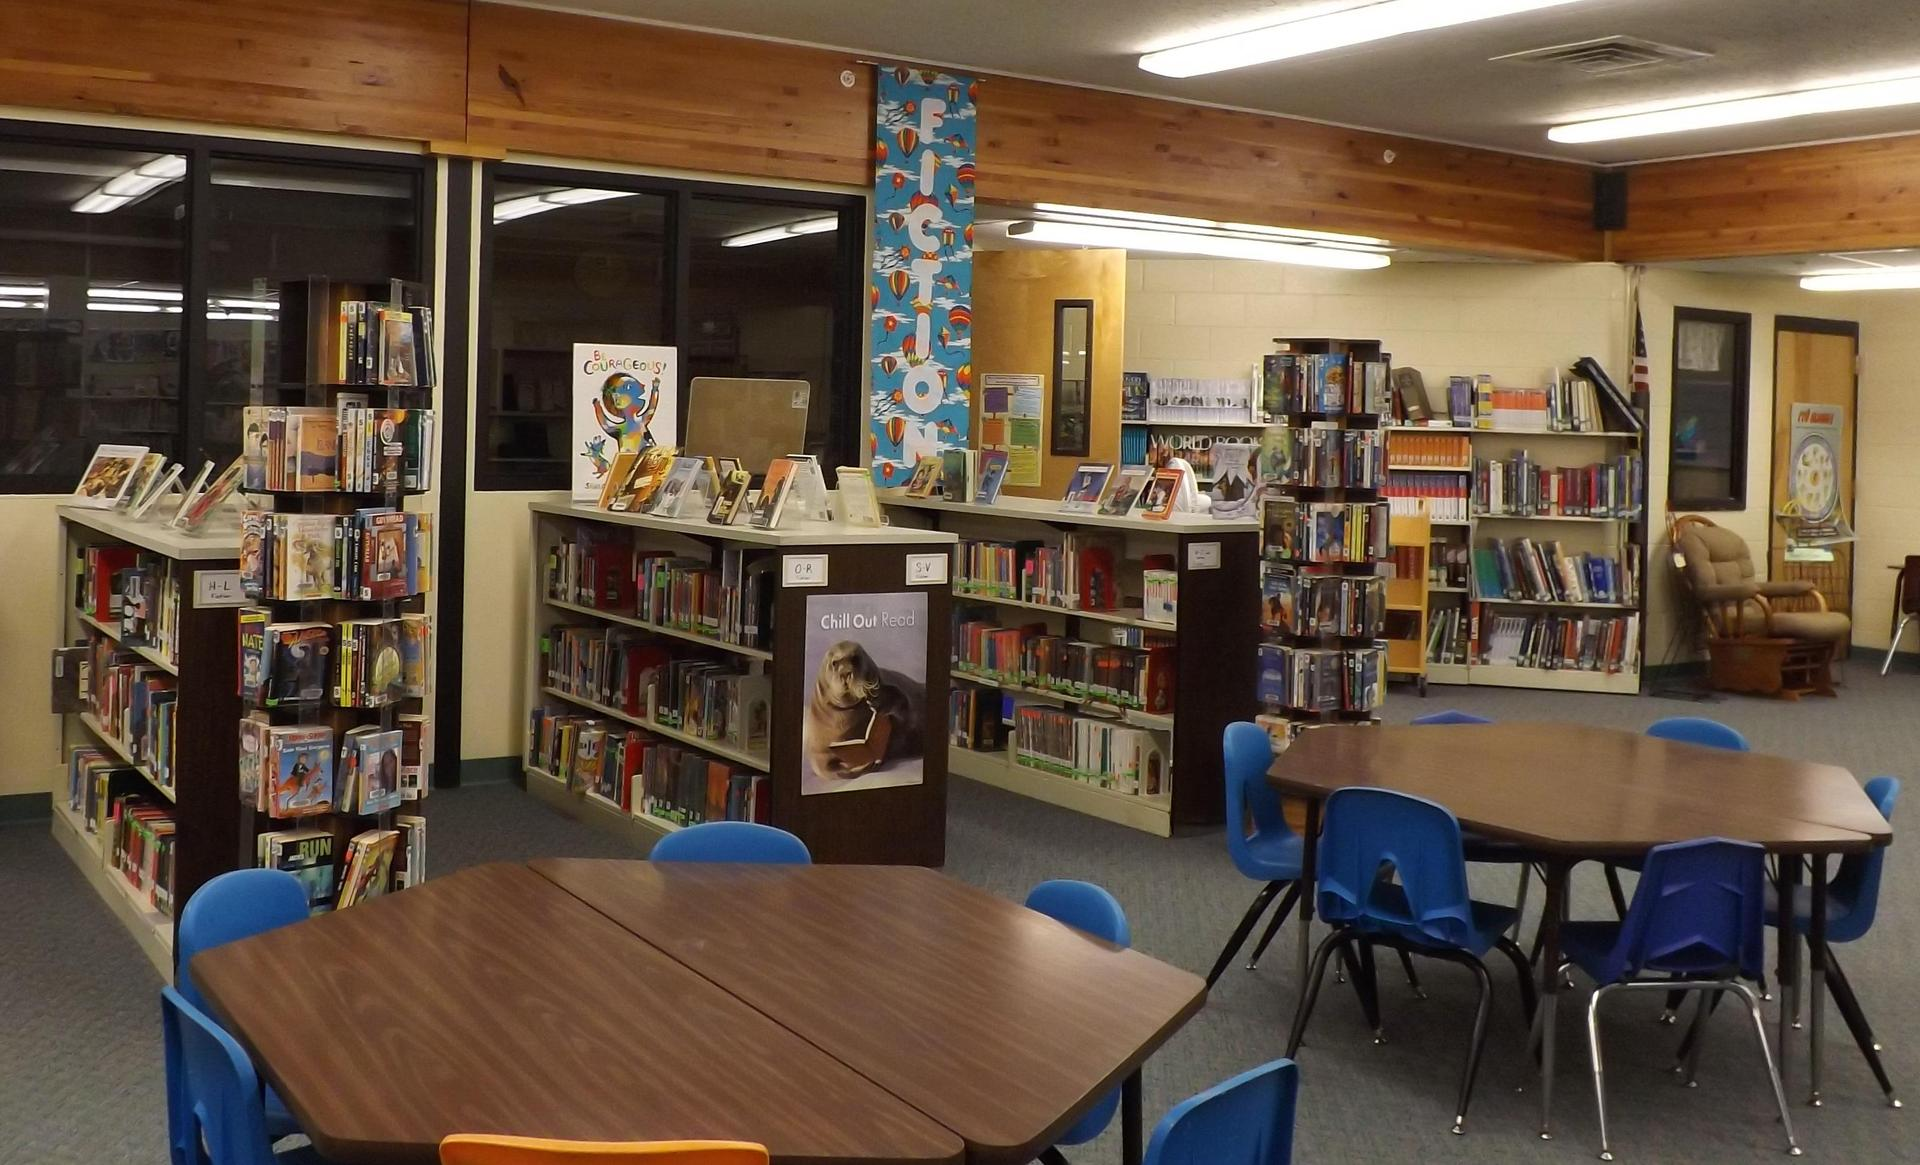 This is a view of the fiction section in the library.